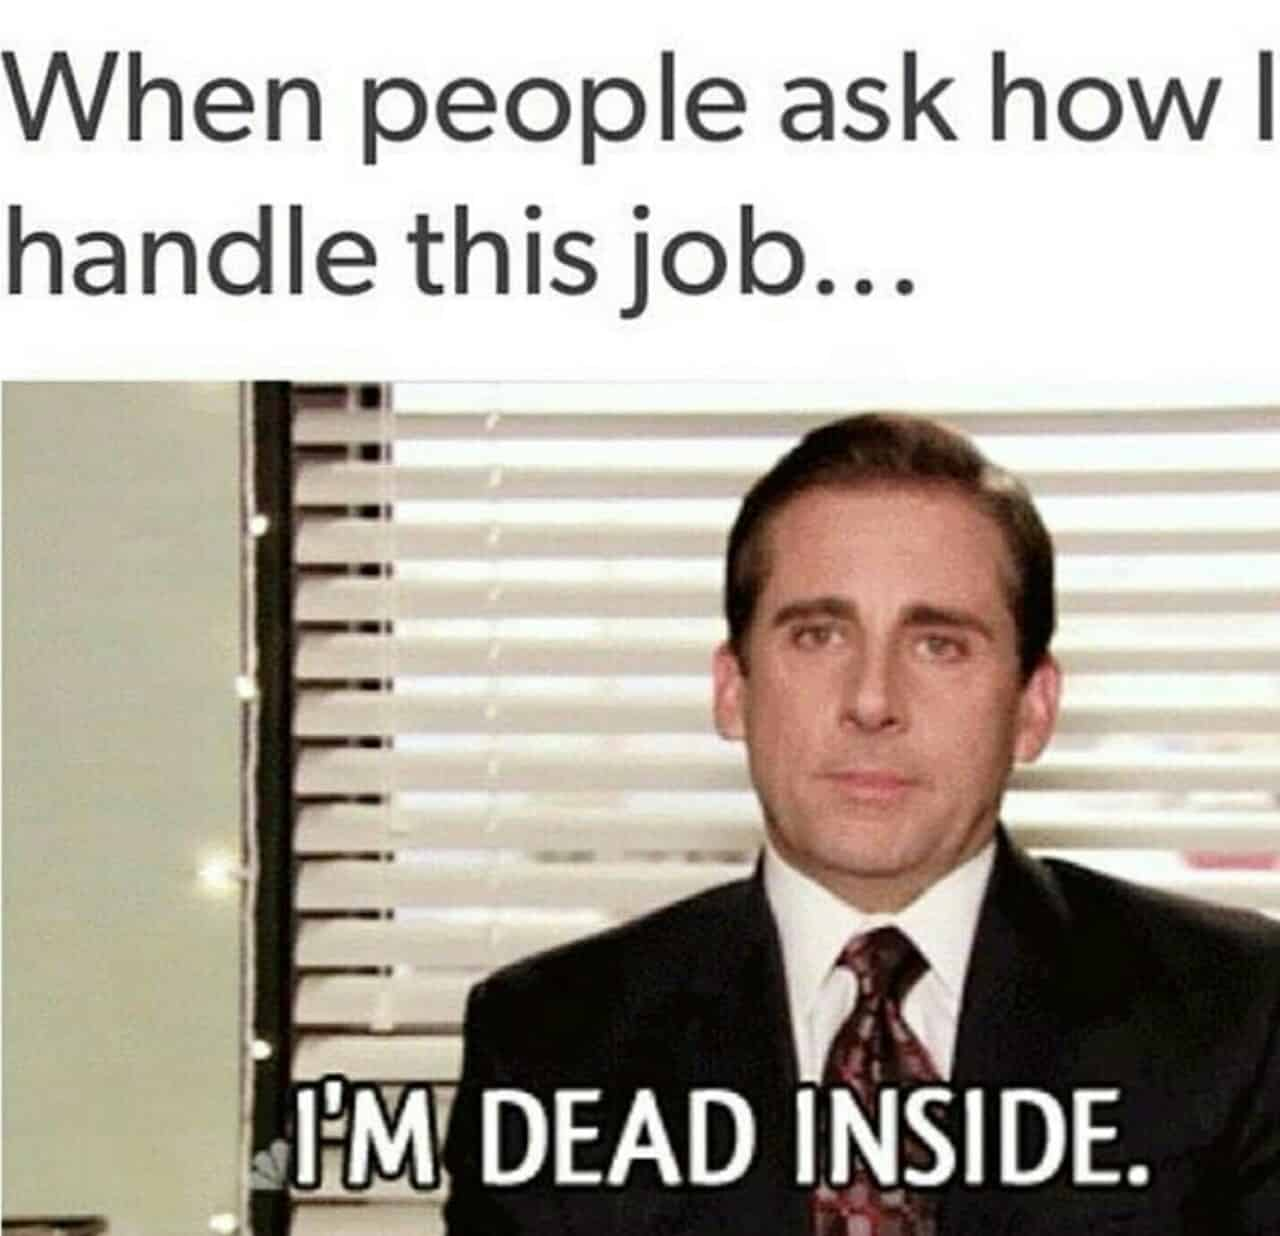 Work Sucks Meme Collection SayingImagescom - 20 memes about being at work that are painfully true